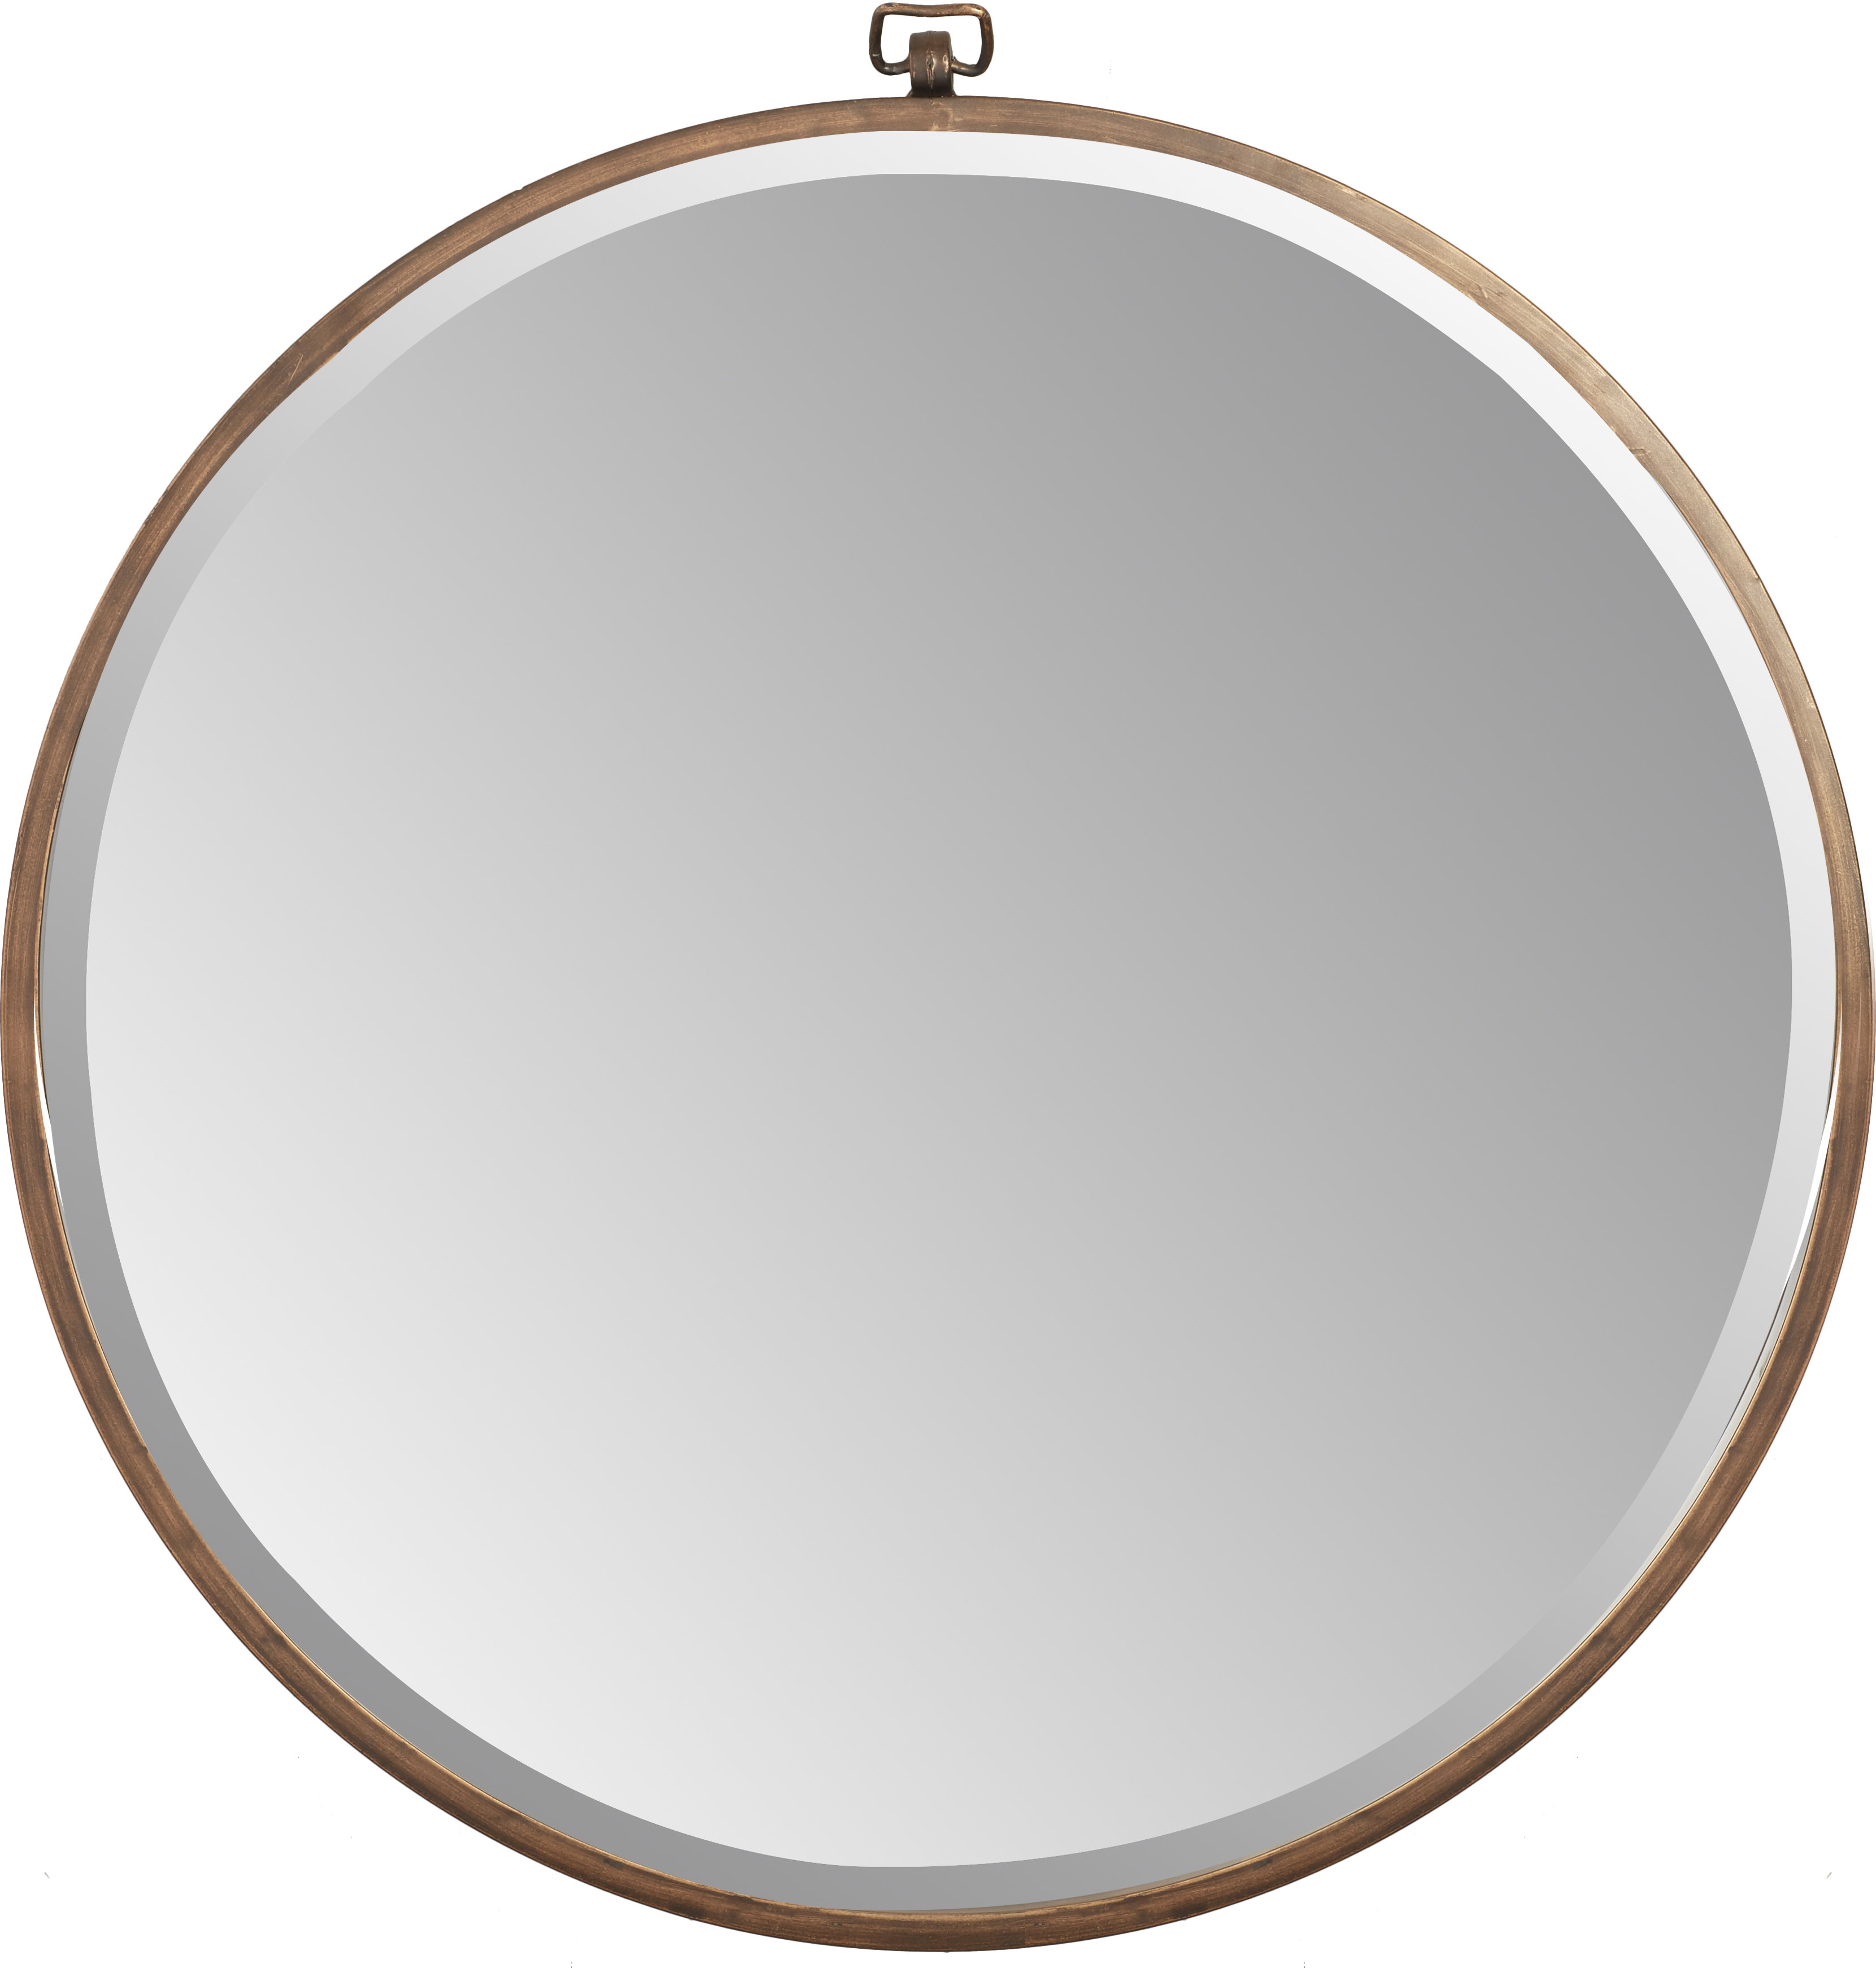 Langley Street Minerva Accent Mirror Inside Most Popular Mcnary Accent Mirrors (View 6 of 20)